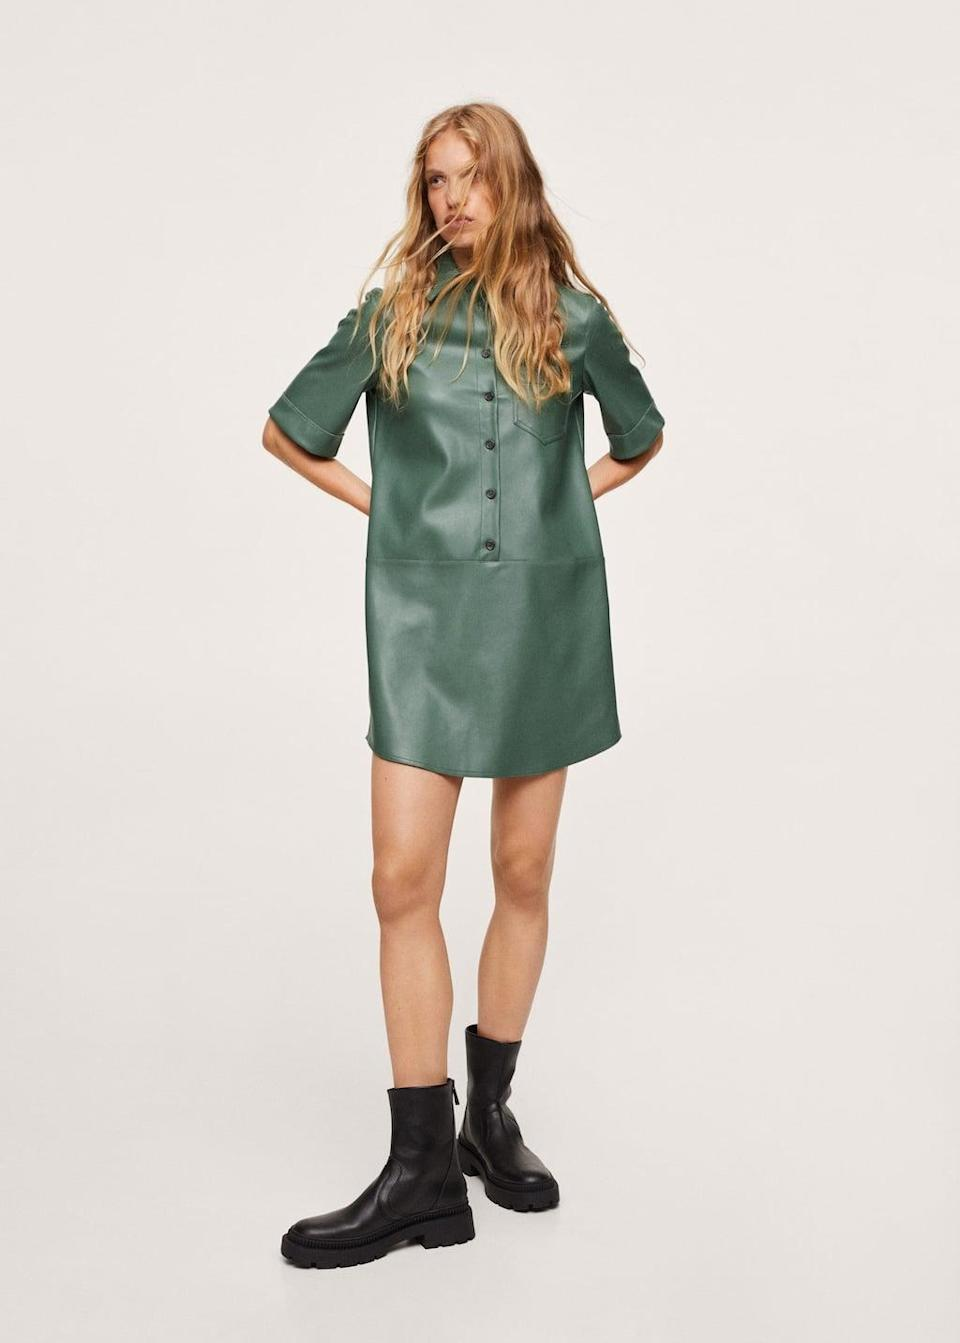 <p>Tap into the colorful leather trend with this edgy <span>Mango Faux Leather Shirt Dress</span> ($80). It's so effortlessly cool and polished, you'll get lots of compliments on it.</p>